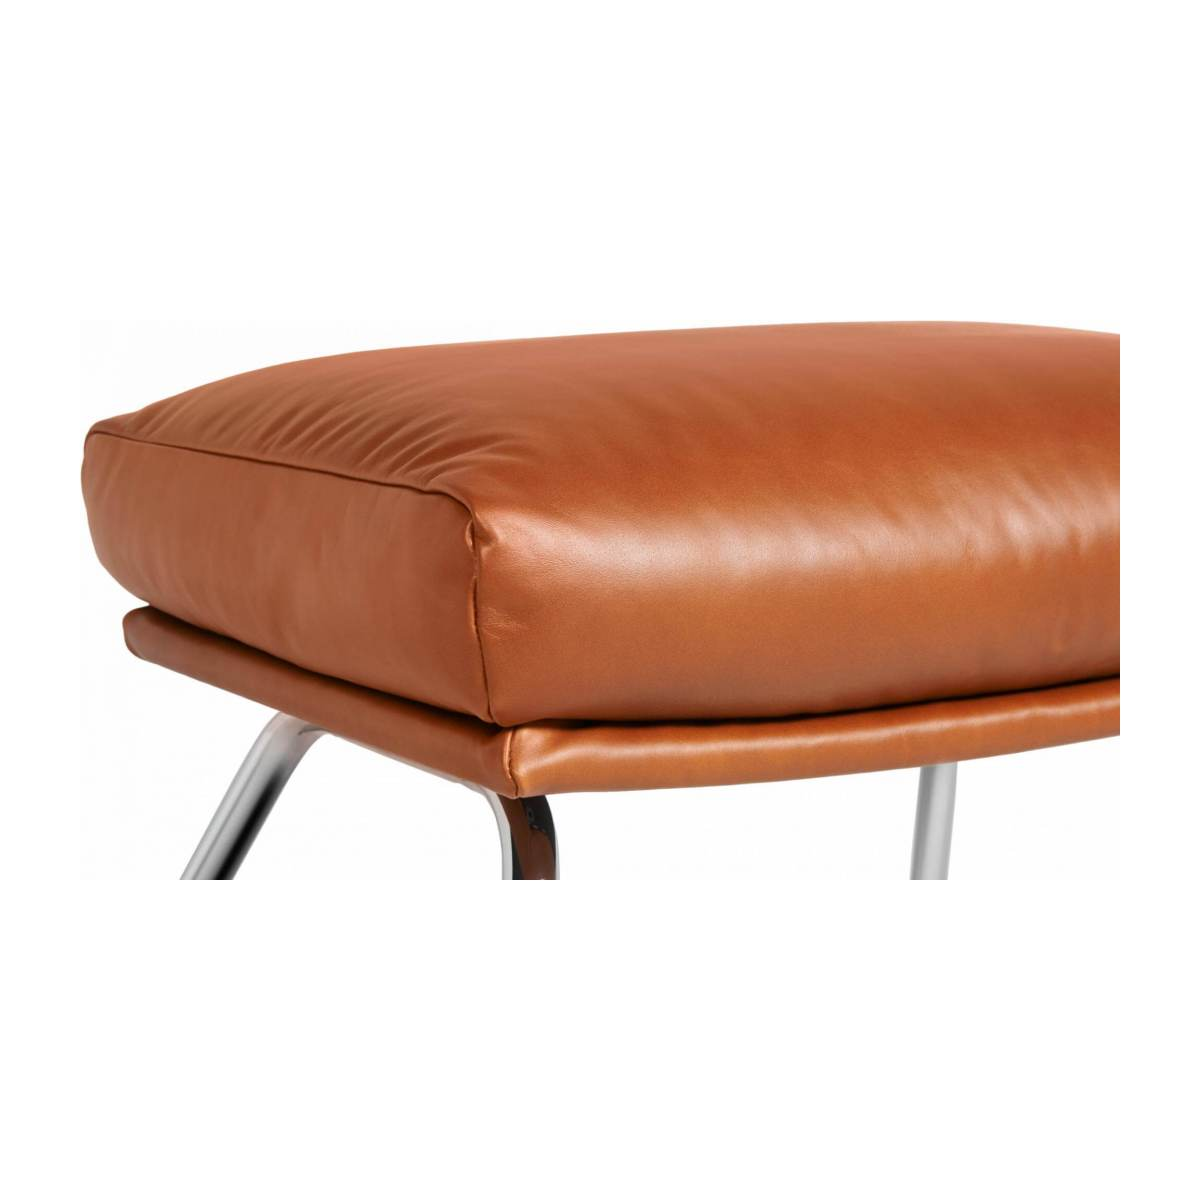 Footstool in aniline Vintage Leather, old chestnut with oak legs n°4